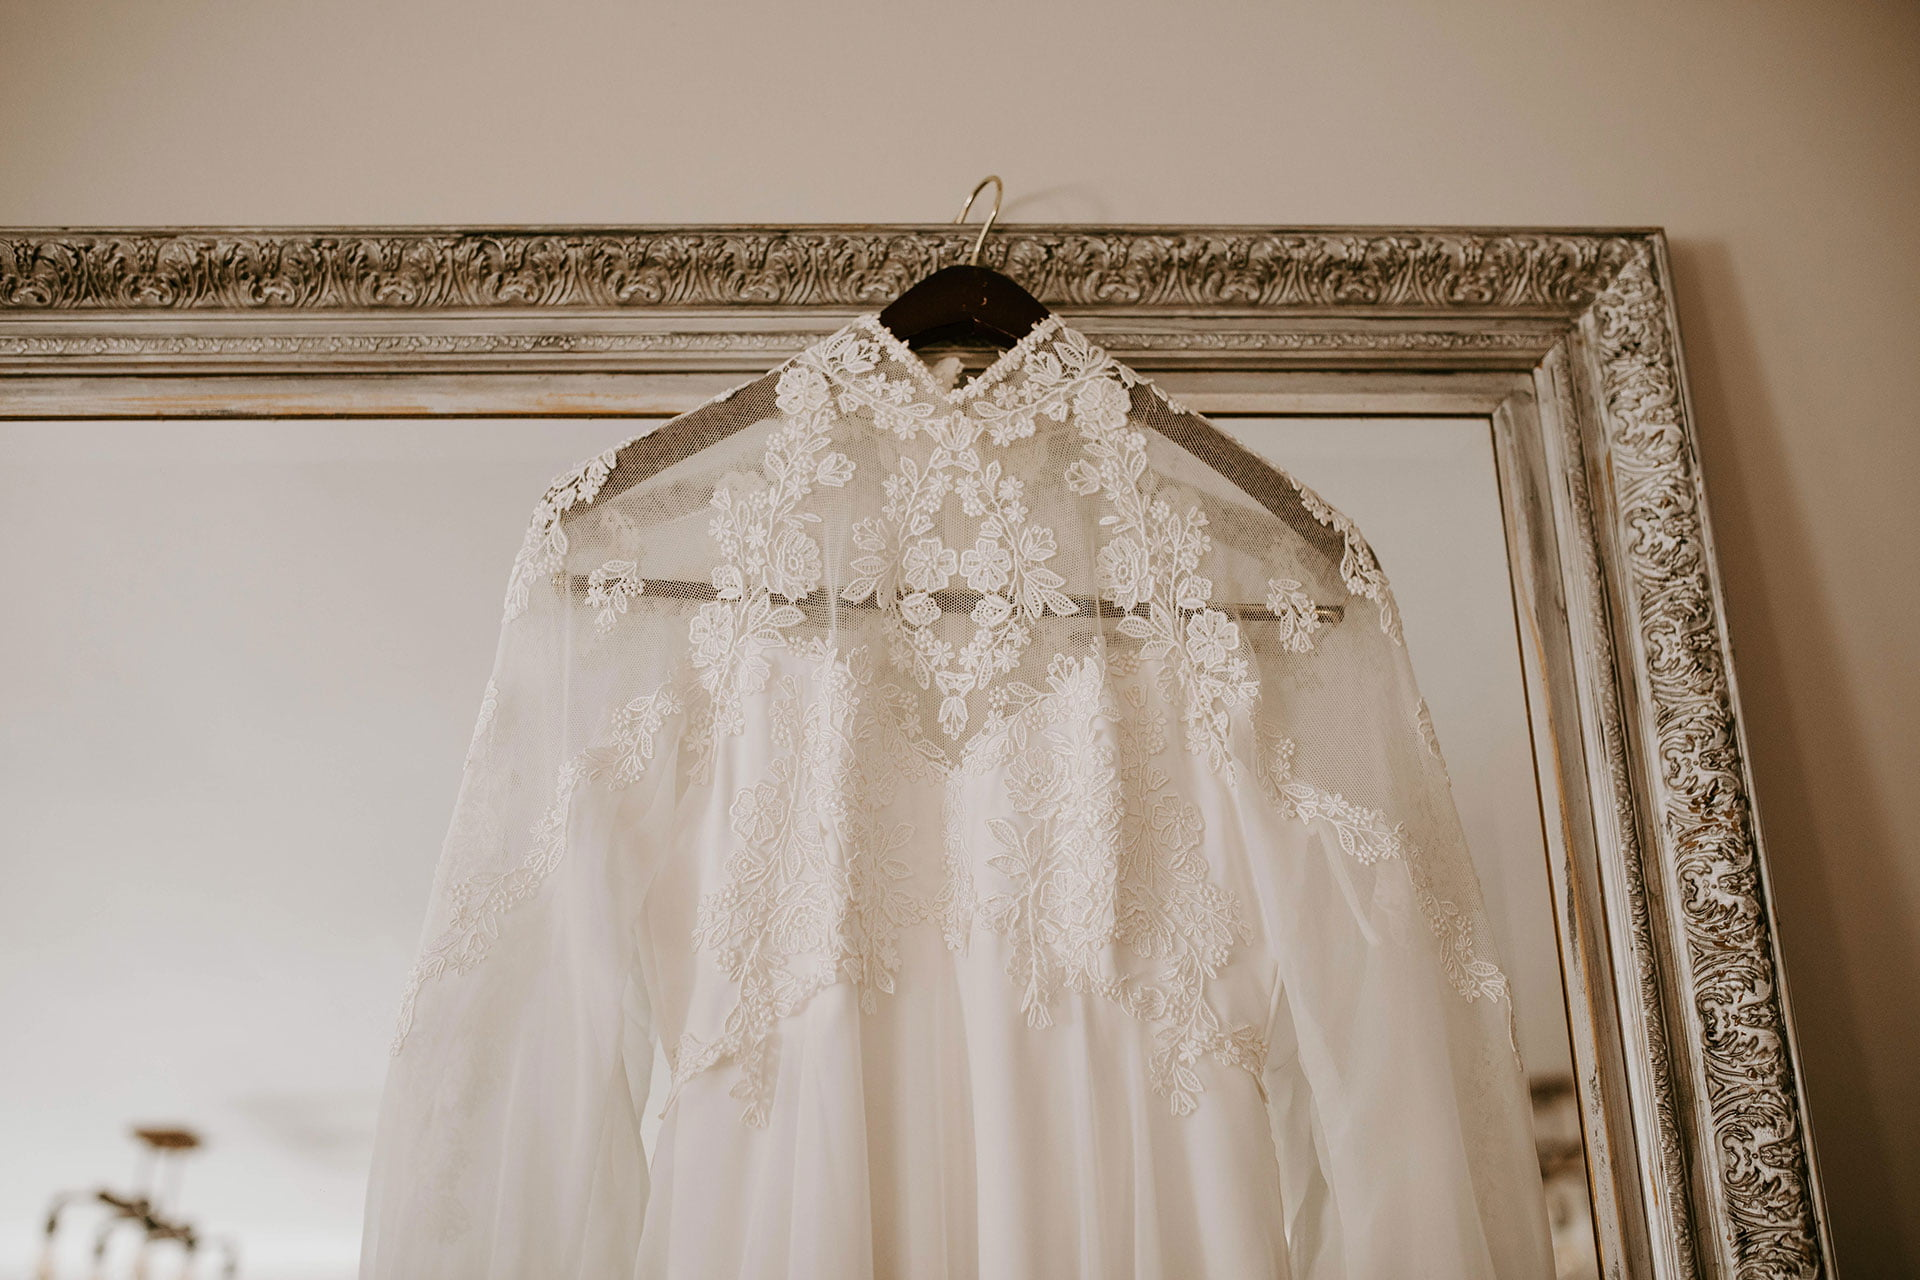 wedding dress hanging from the mirror